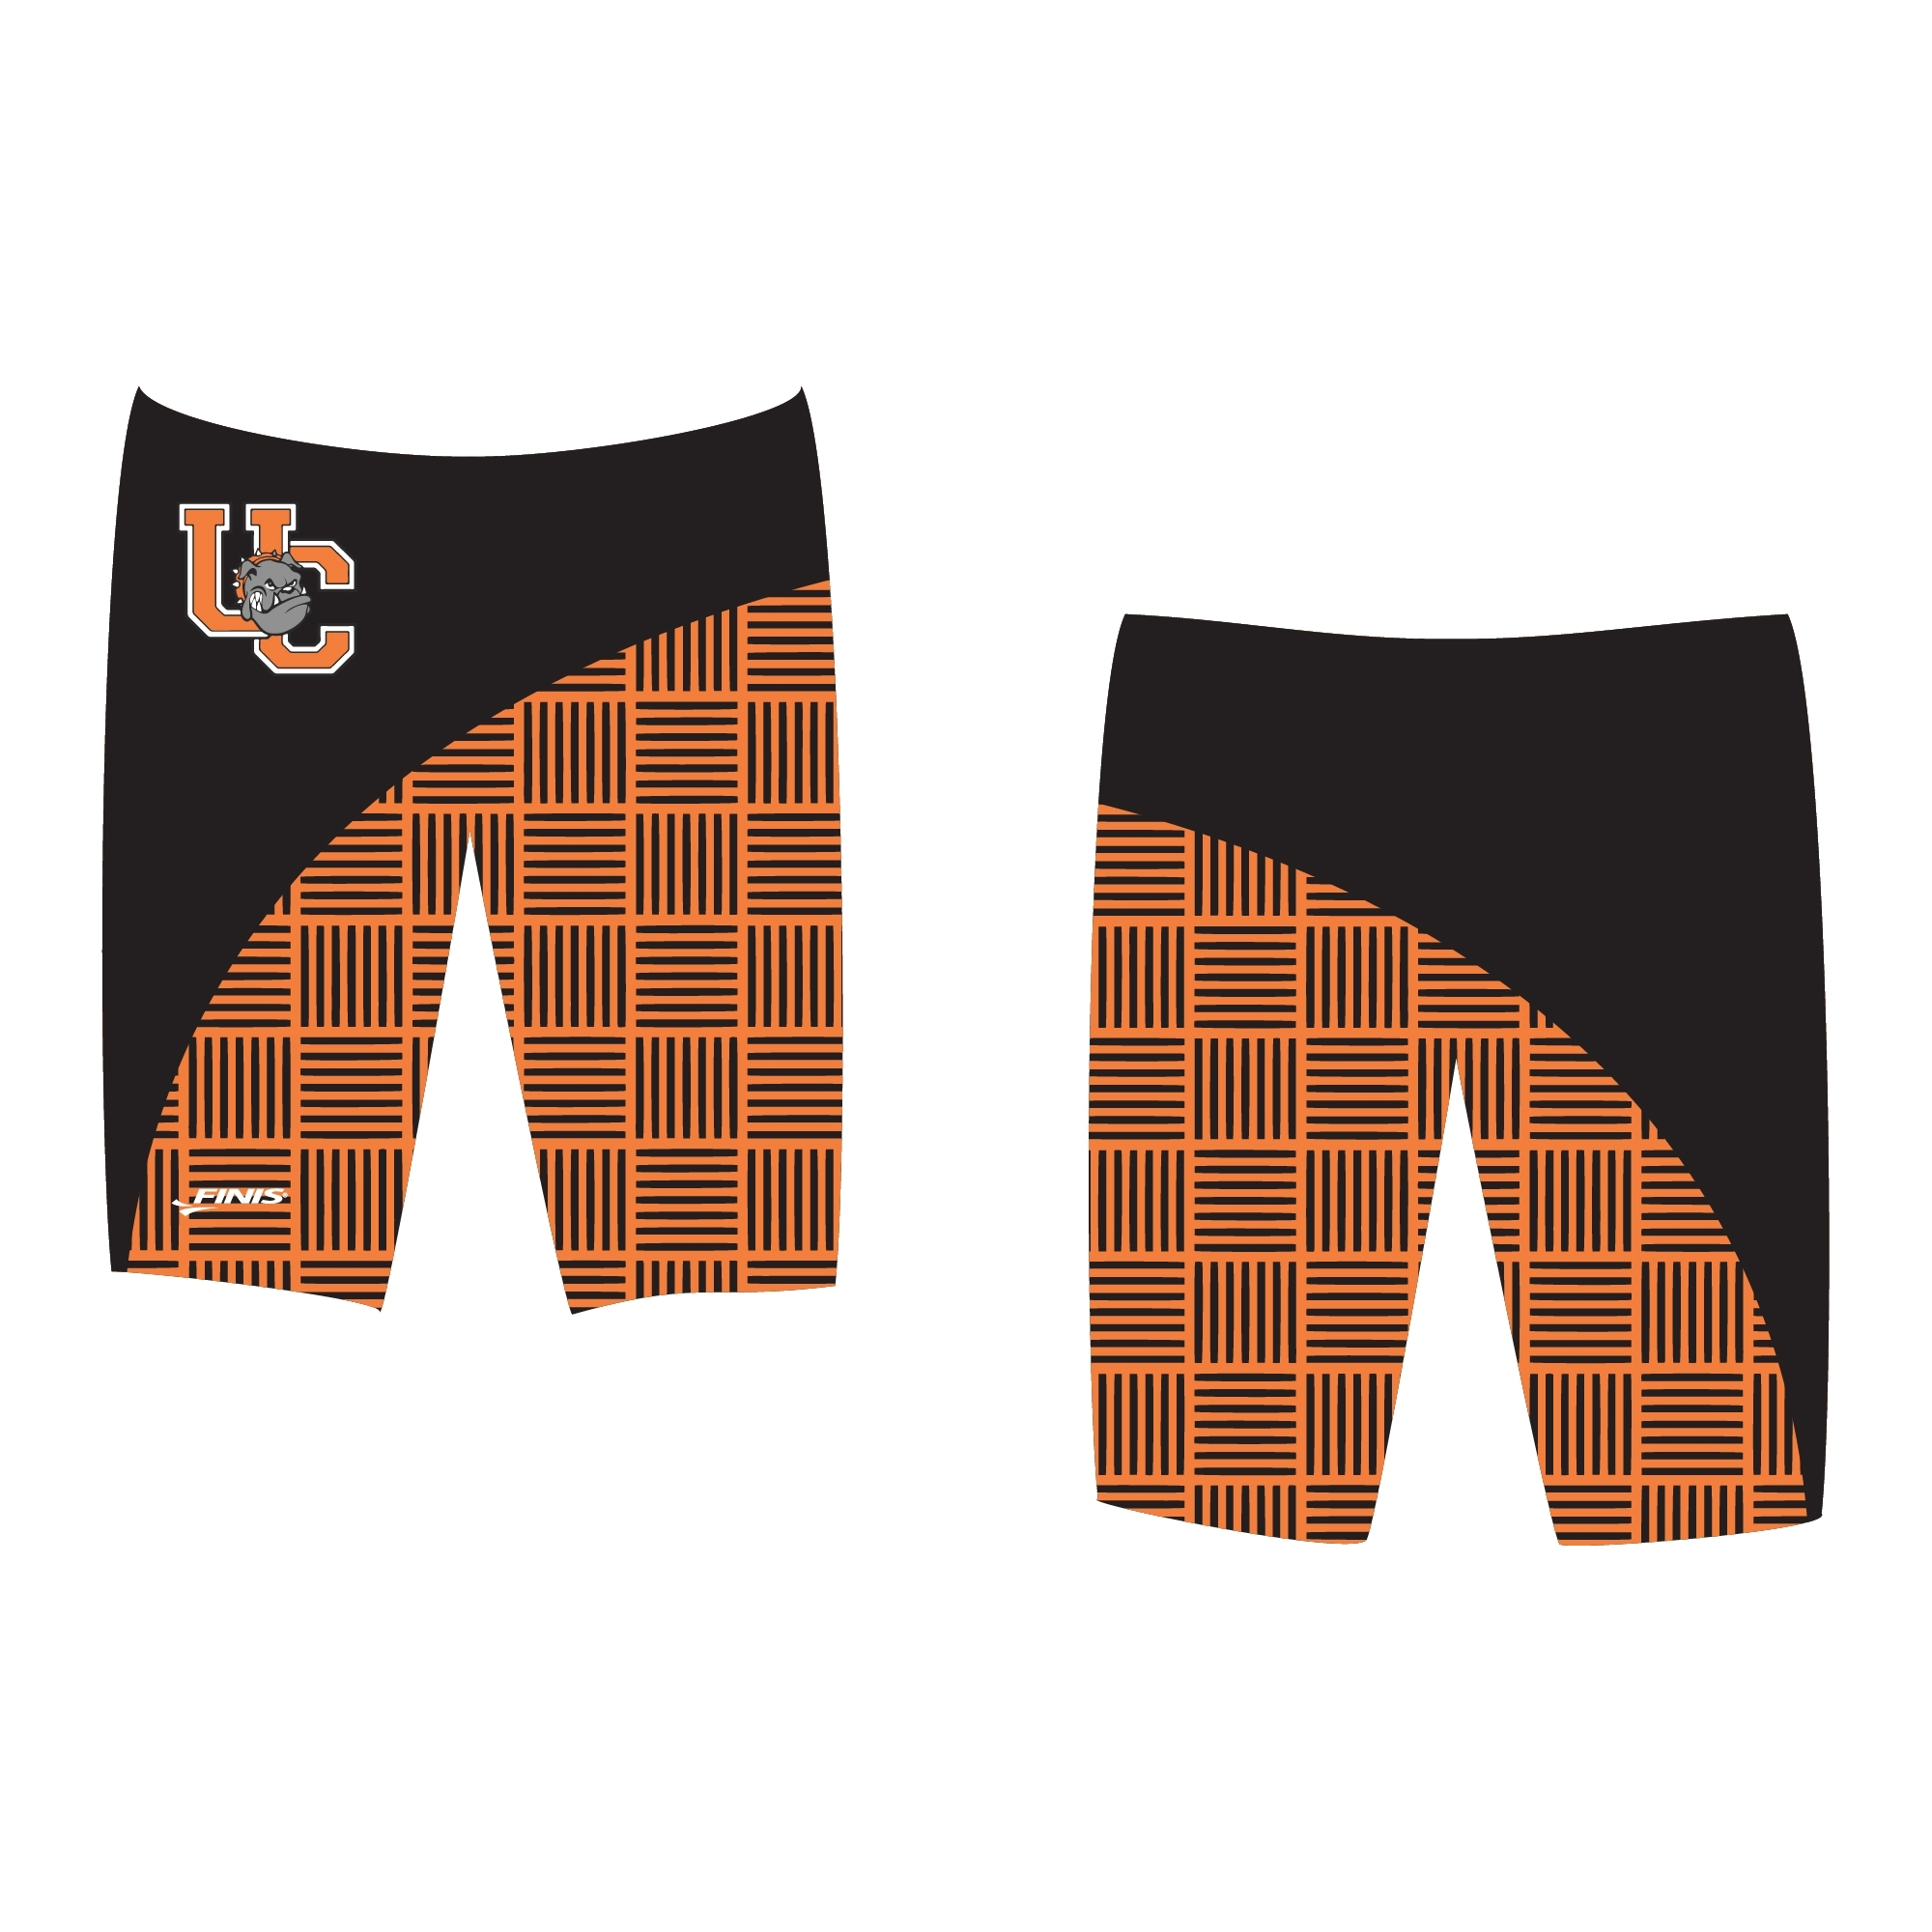 UC bull dog mascot swimsuit on a finis custom jammer swimsuit proof